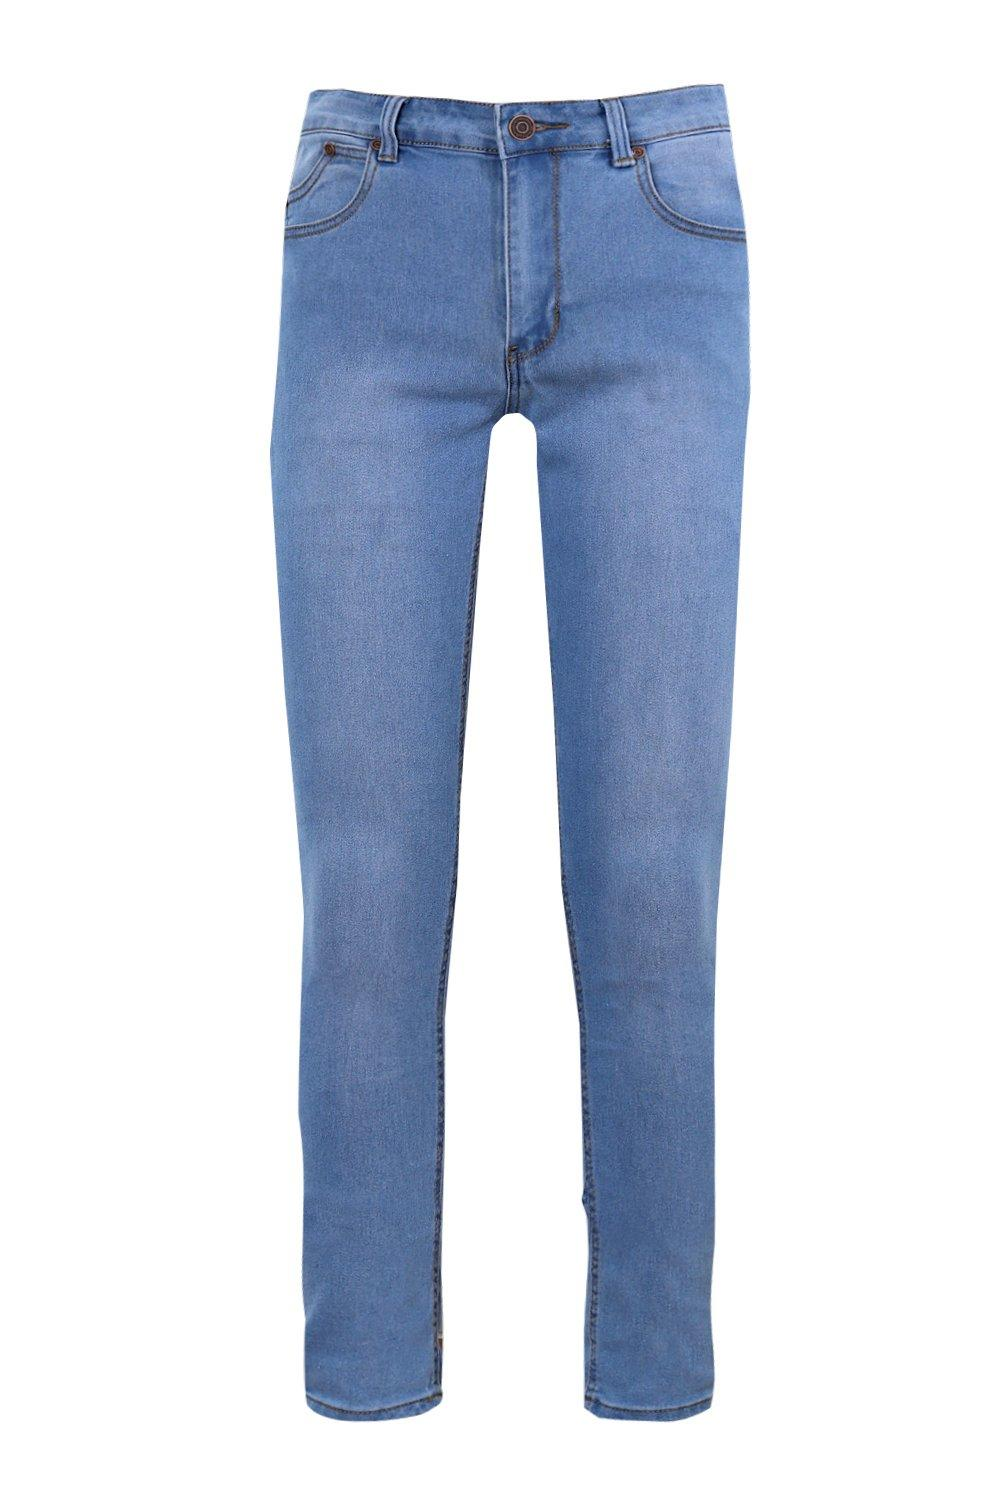 boohoo mens stone washed stretch skinny fit jeans ebay. Black Bedroom Furniture Sets. Home Design Ideas